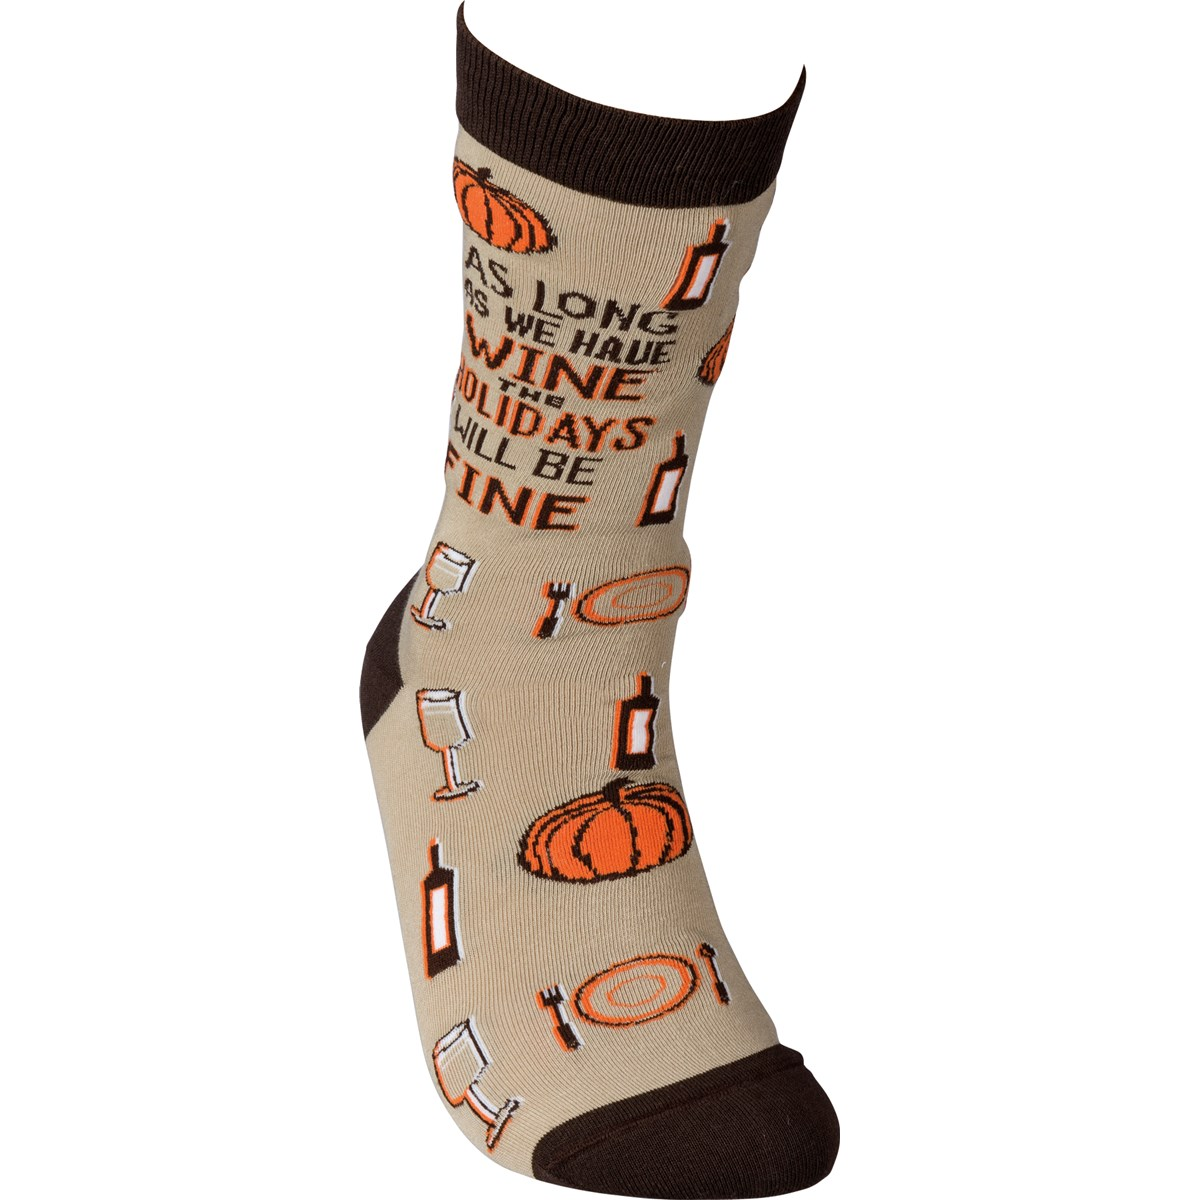 Socks - As Long As We Have Wine Holidays Fine - One Size Fits Most - Cotton, Nylon, Spandex